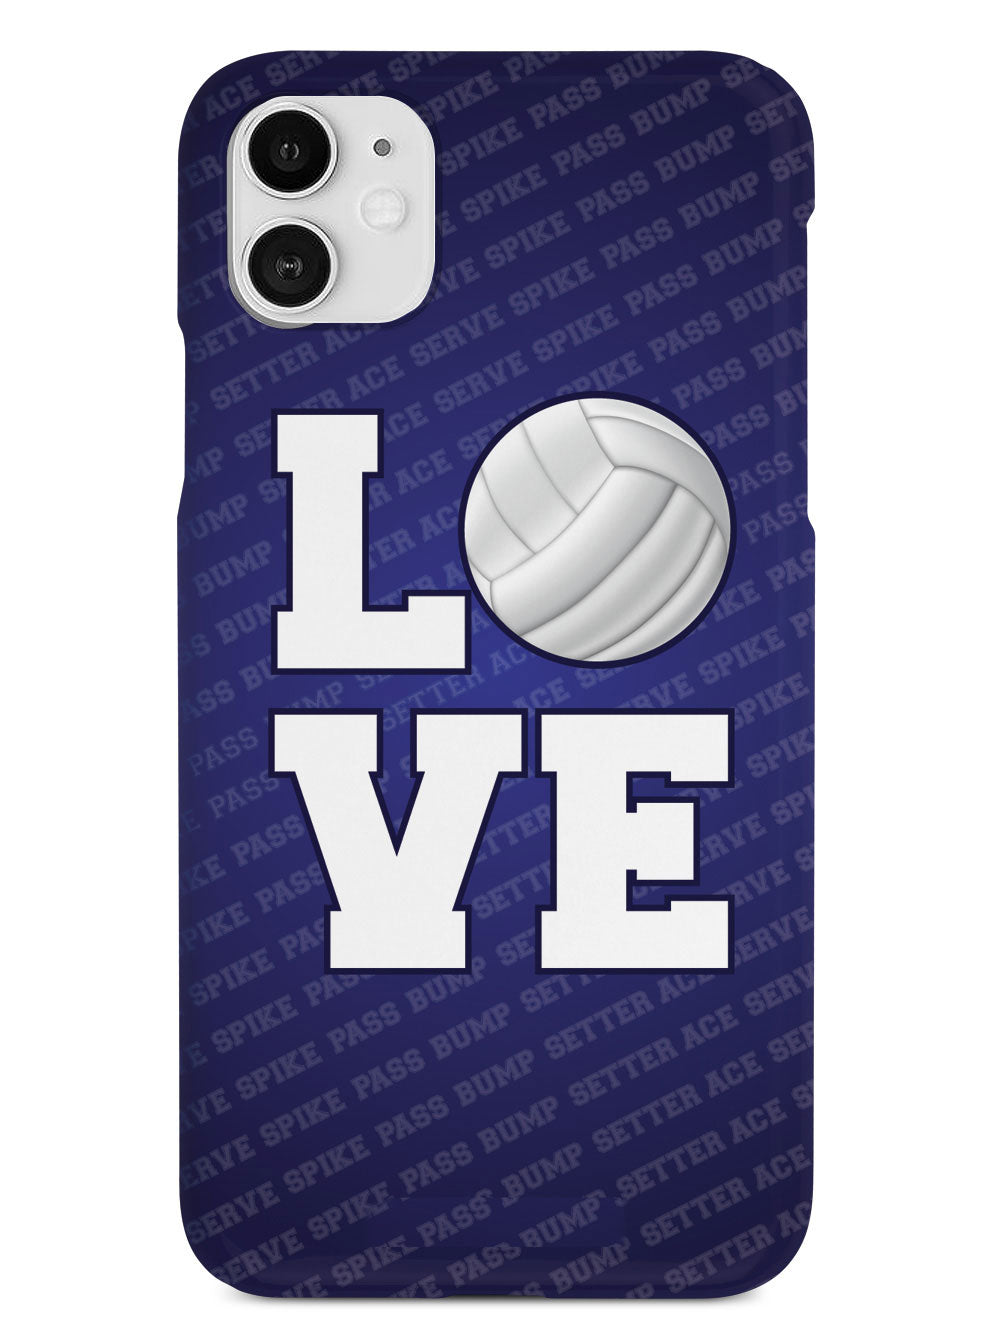 L.O.V.E. Volleyball Case